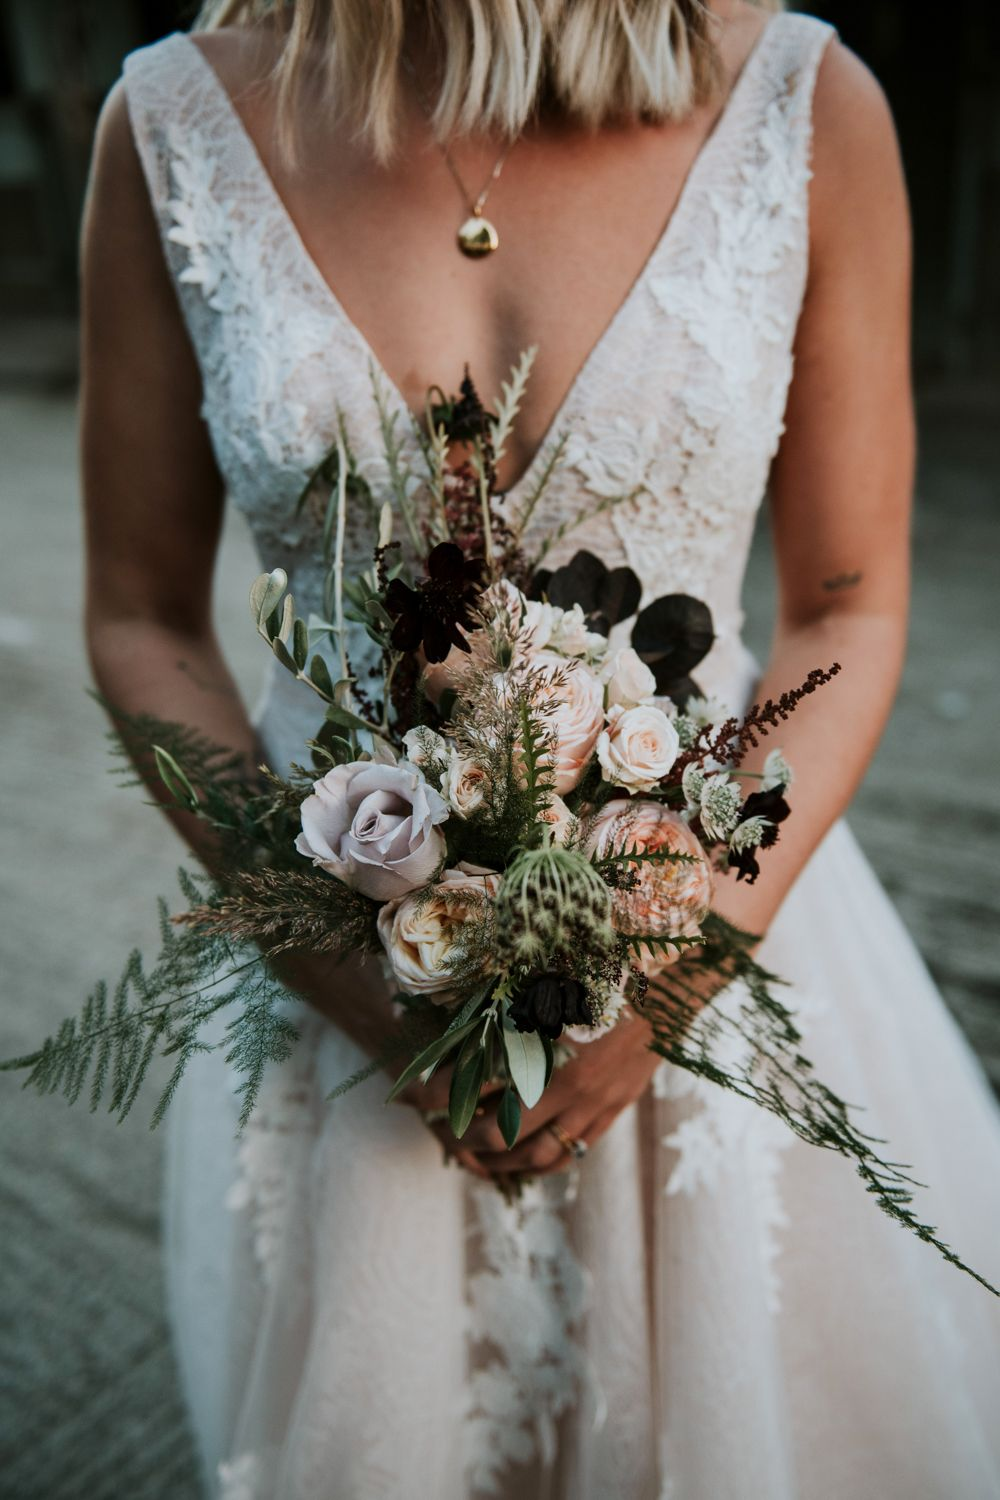 Grace & Thorn - London wedding florist - Rosie Kelly Photography